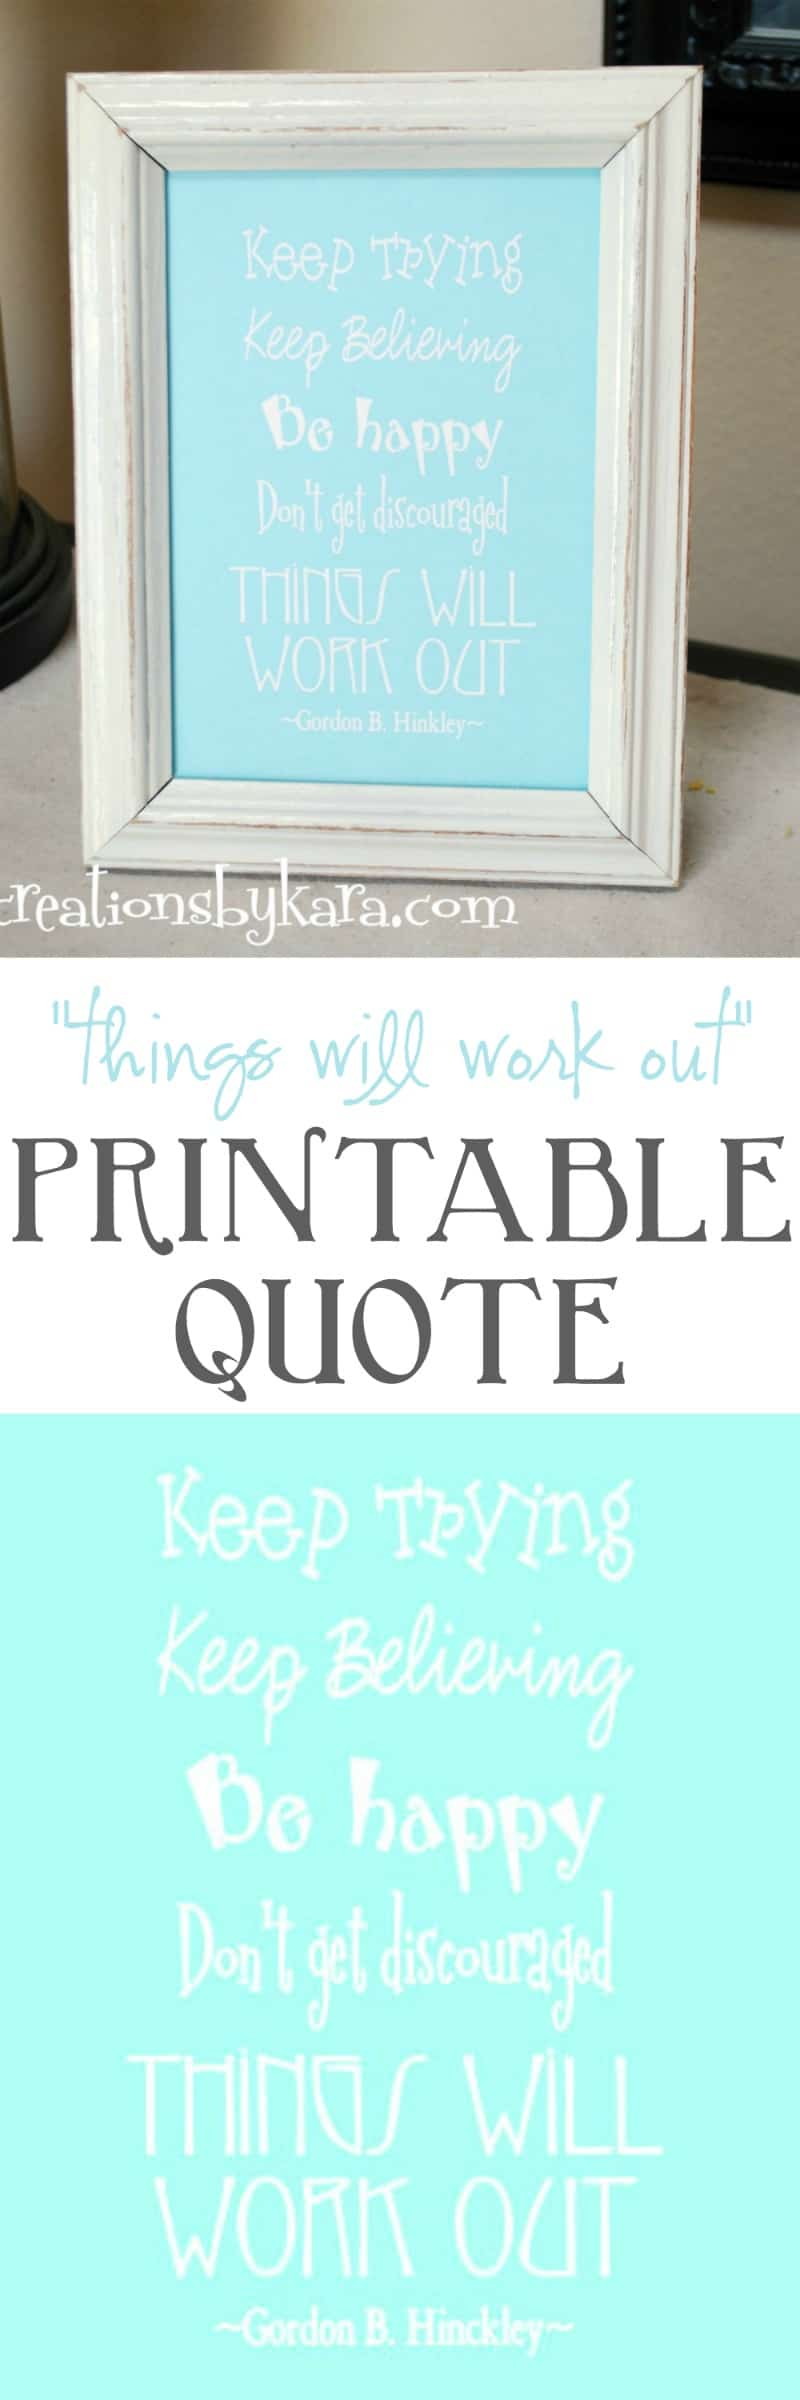 Use this pretty free printable quote in any room!- Things will work out - LDS quote - Hinckley quote - free LDS printable